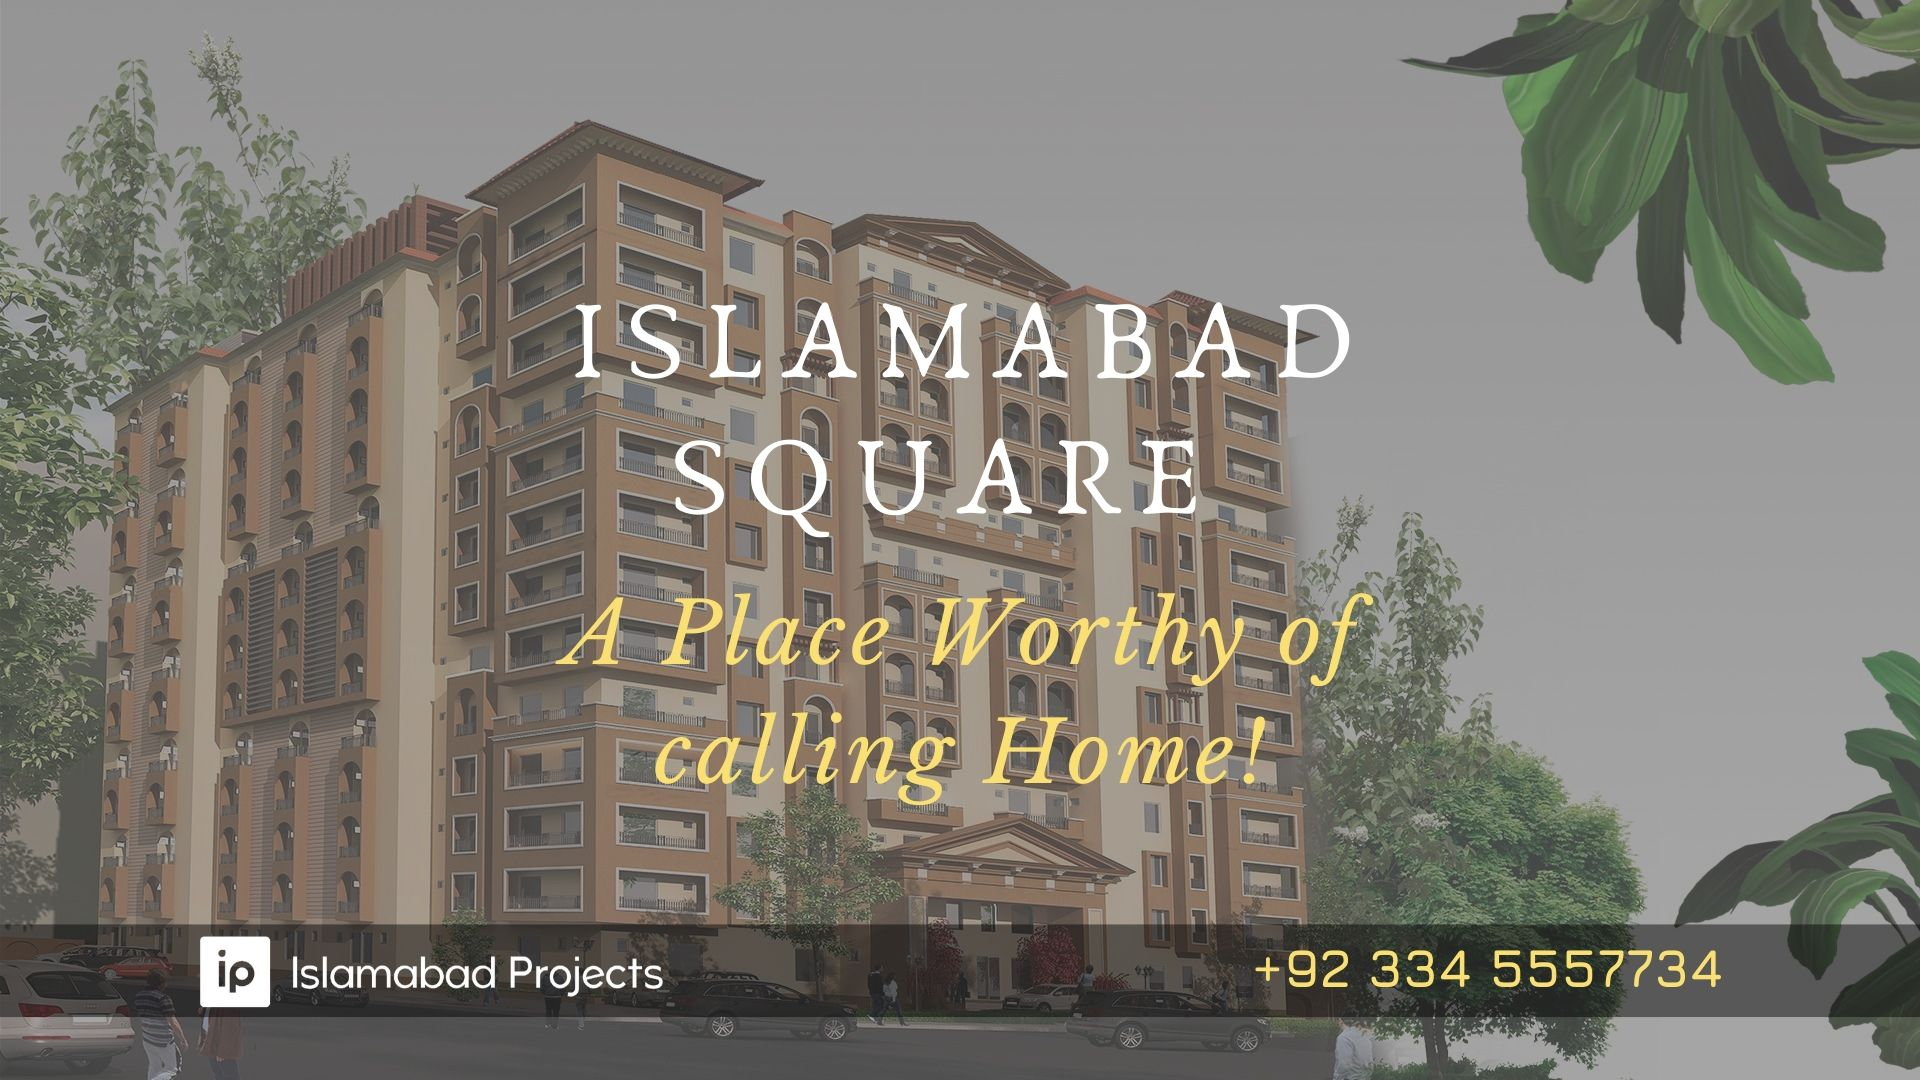 islamabad-square-location-for-home-in-b-17